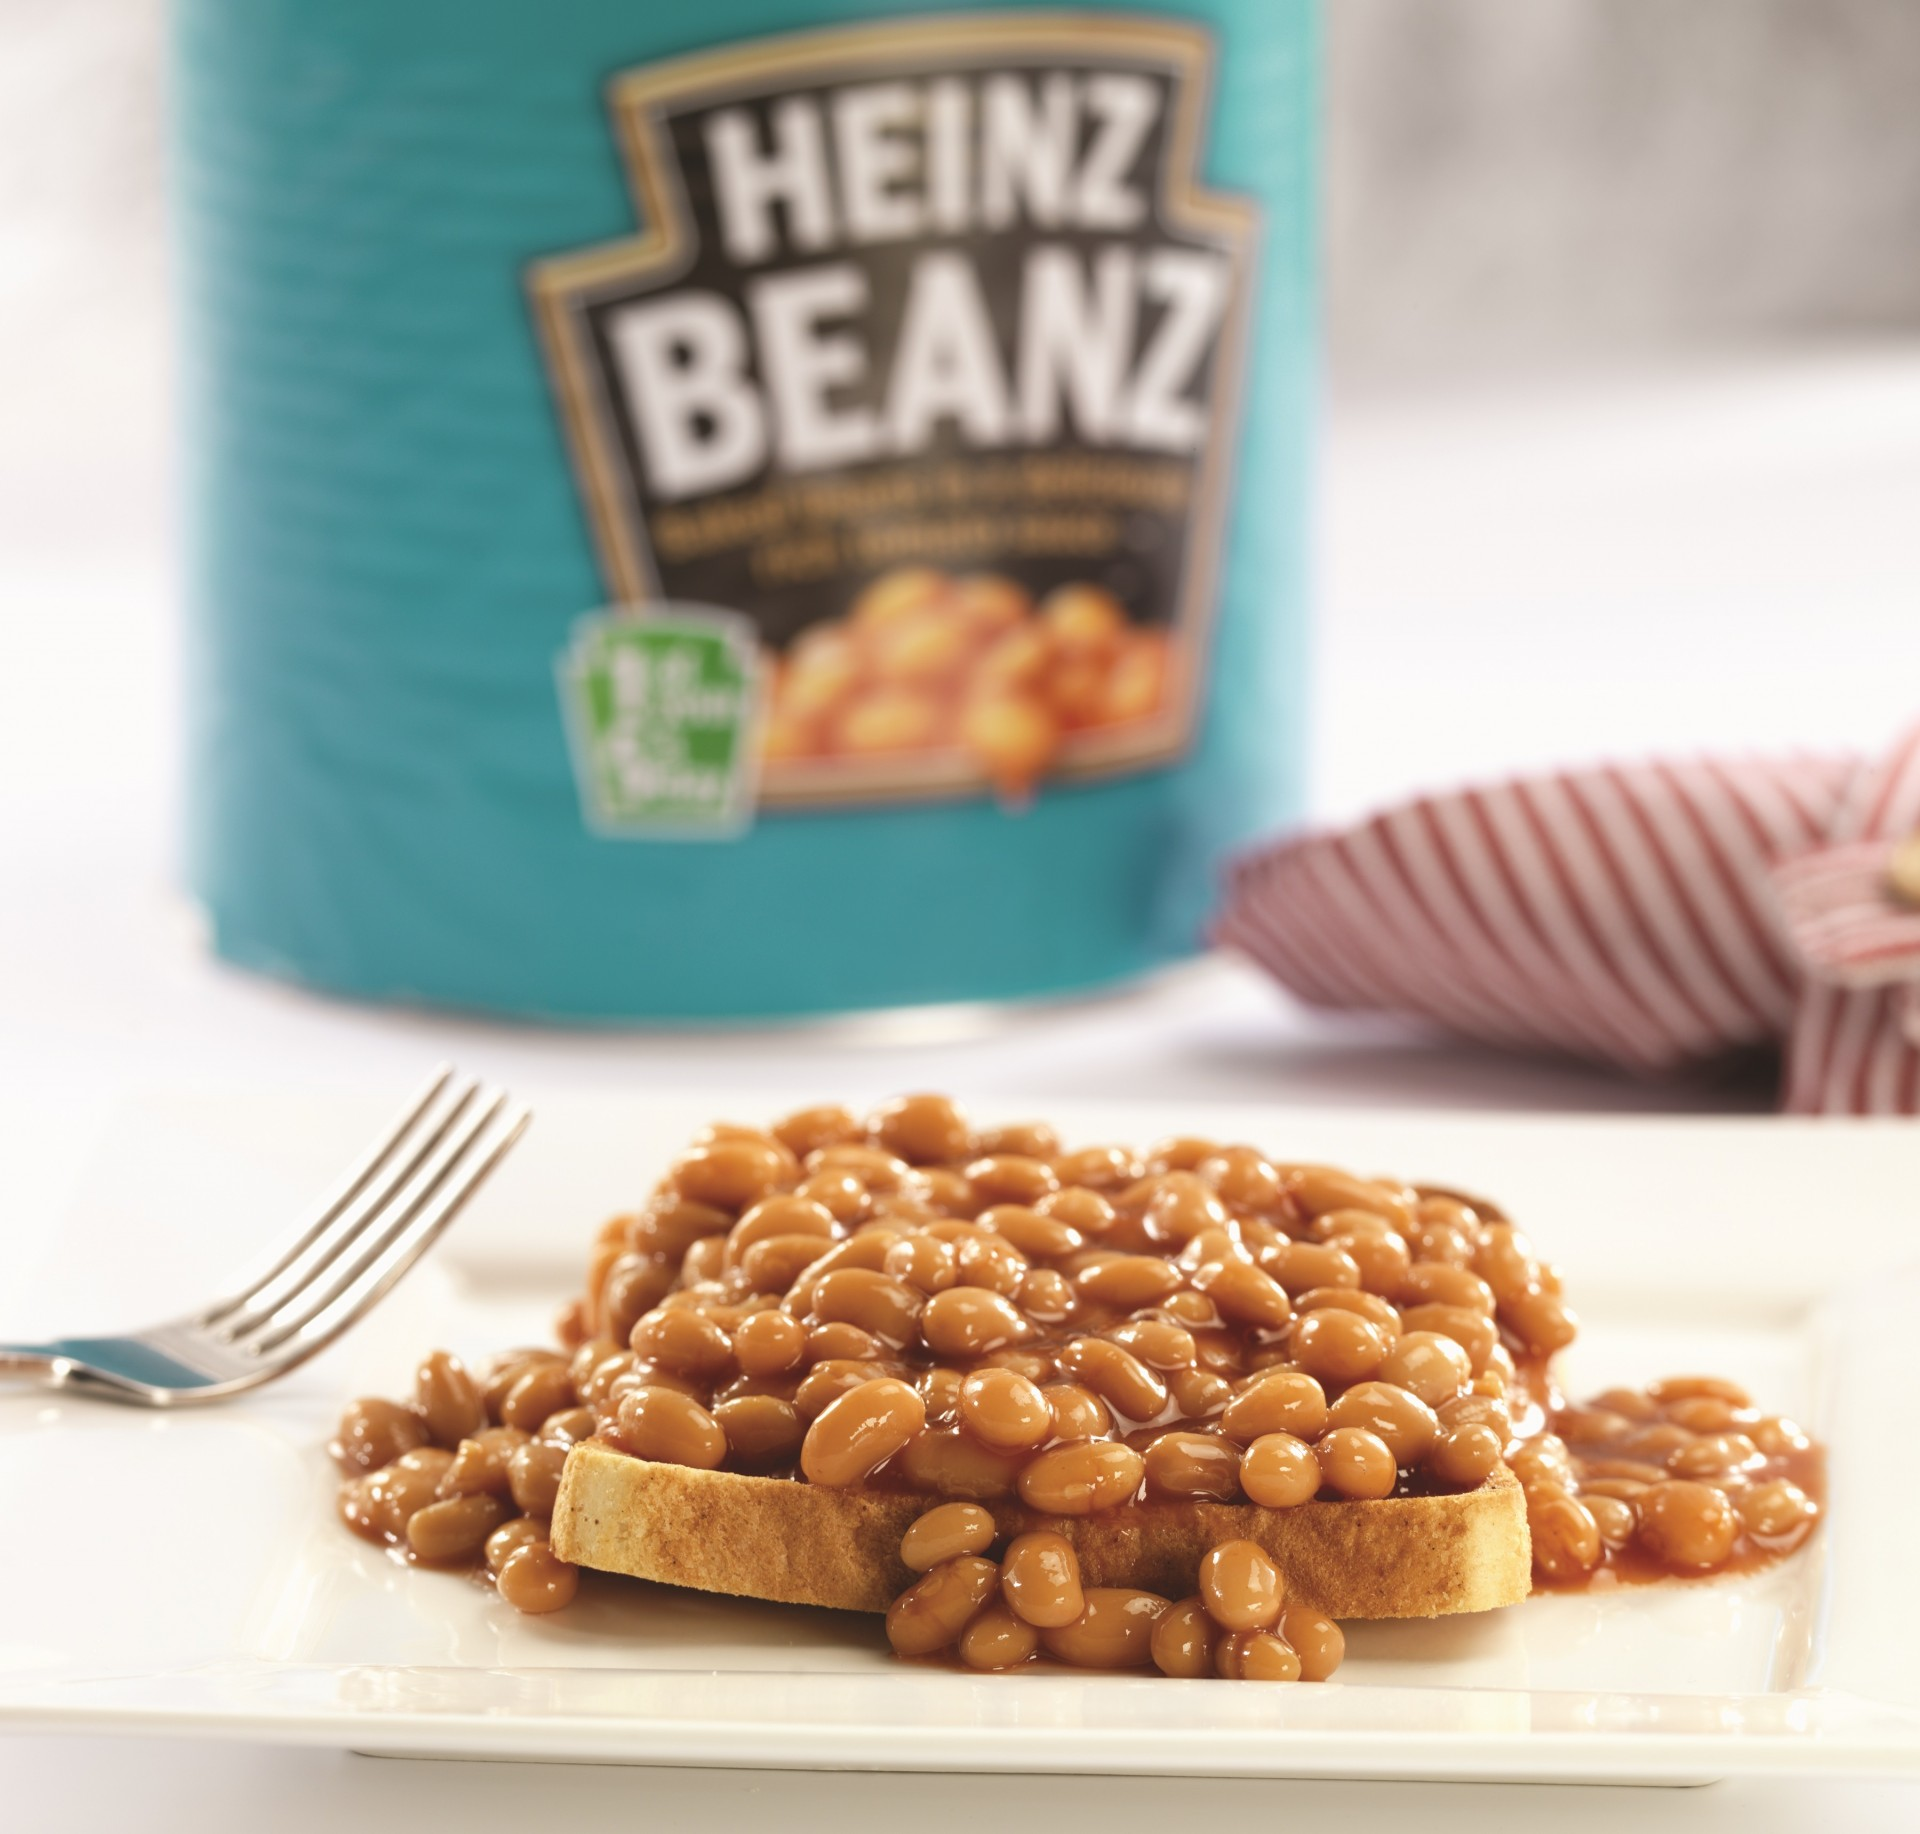 Heinz Baked Beans - Catering